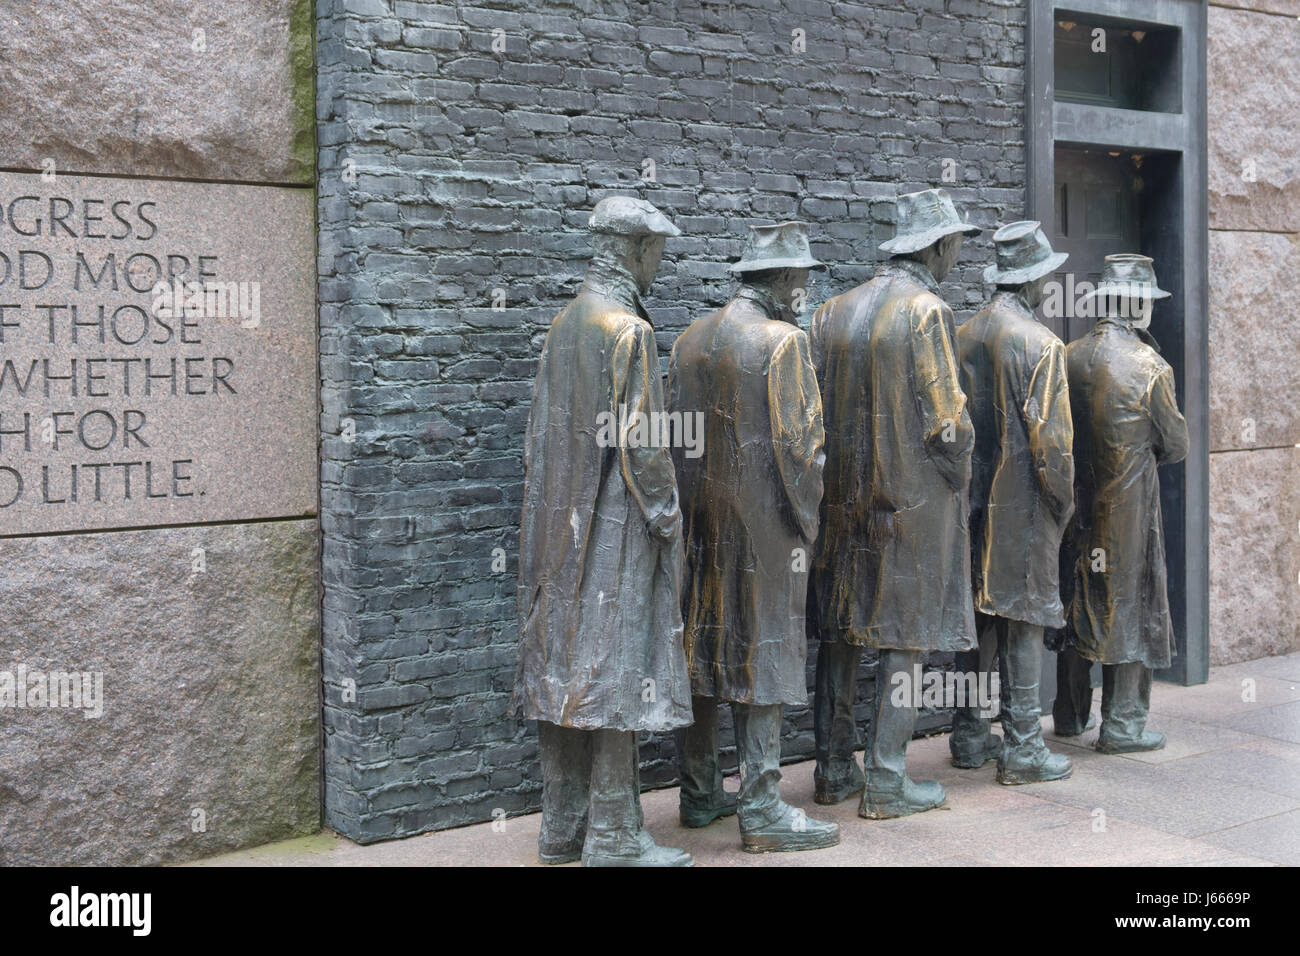 Back View of Great Depression Breadline, FDR Memorial, Washington, DC - Stock Image